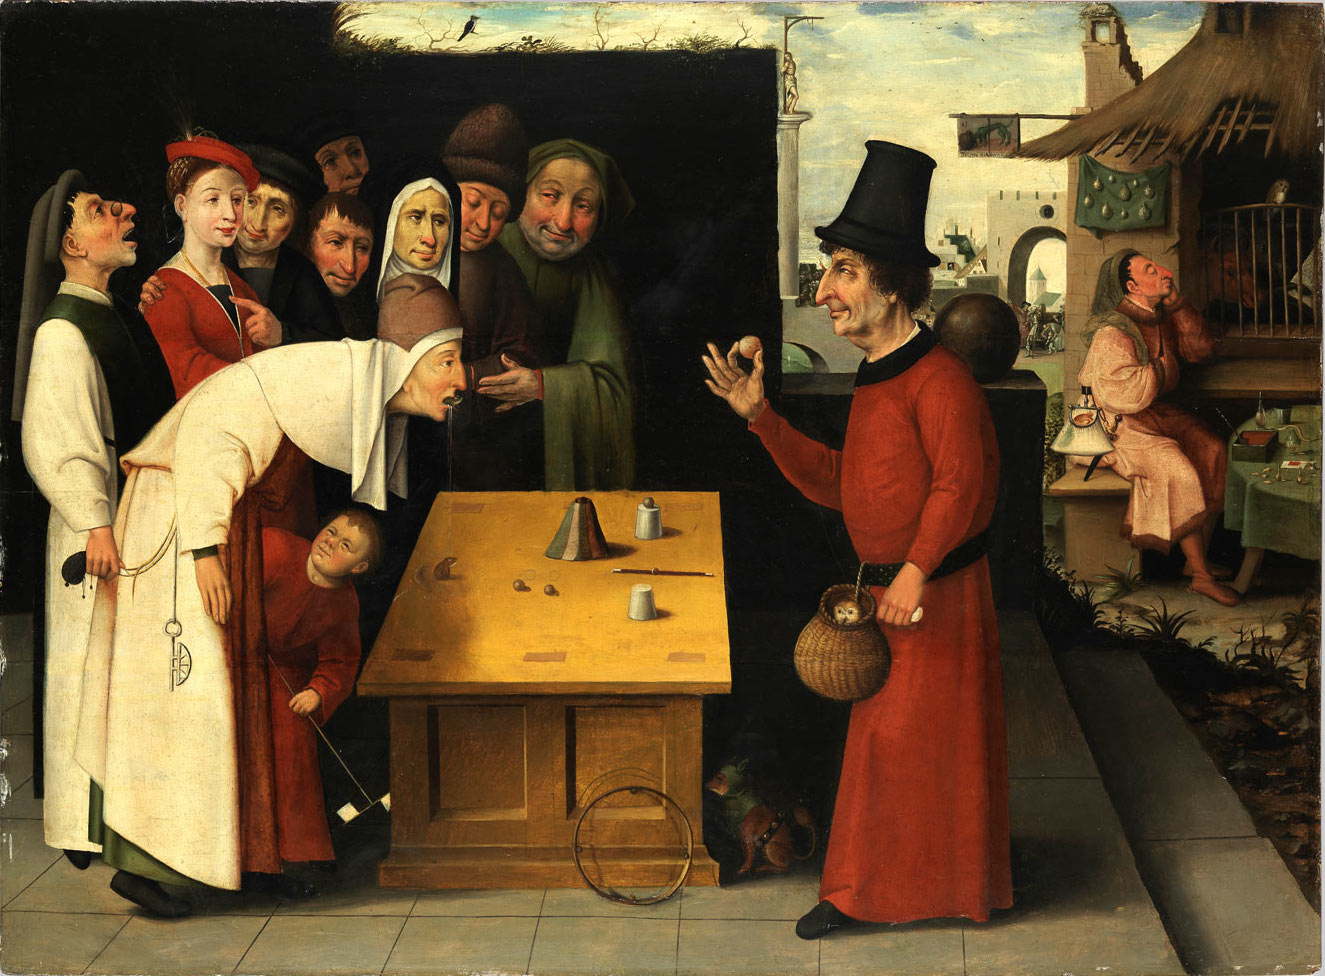 The Conjurer (School of Hieronymus Bosch, after 1500)